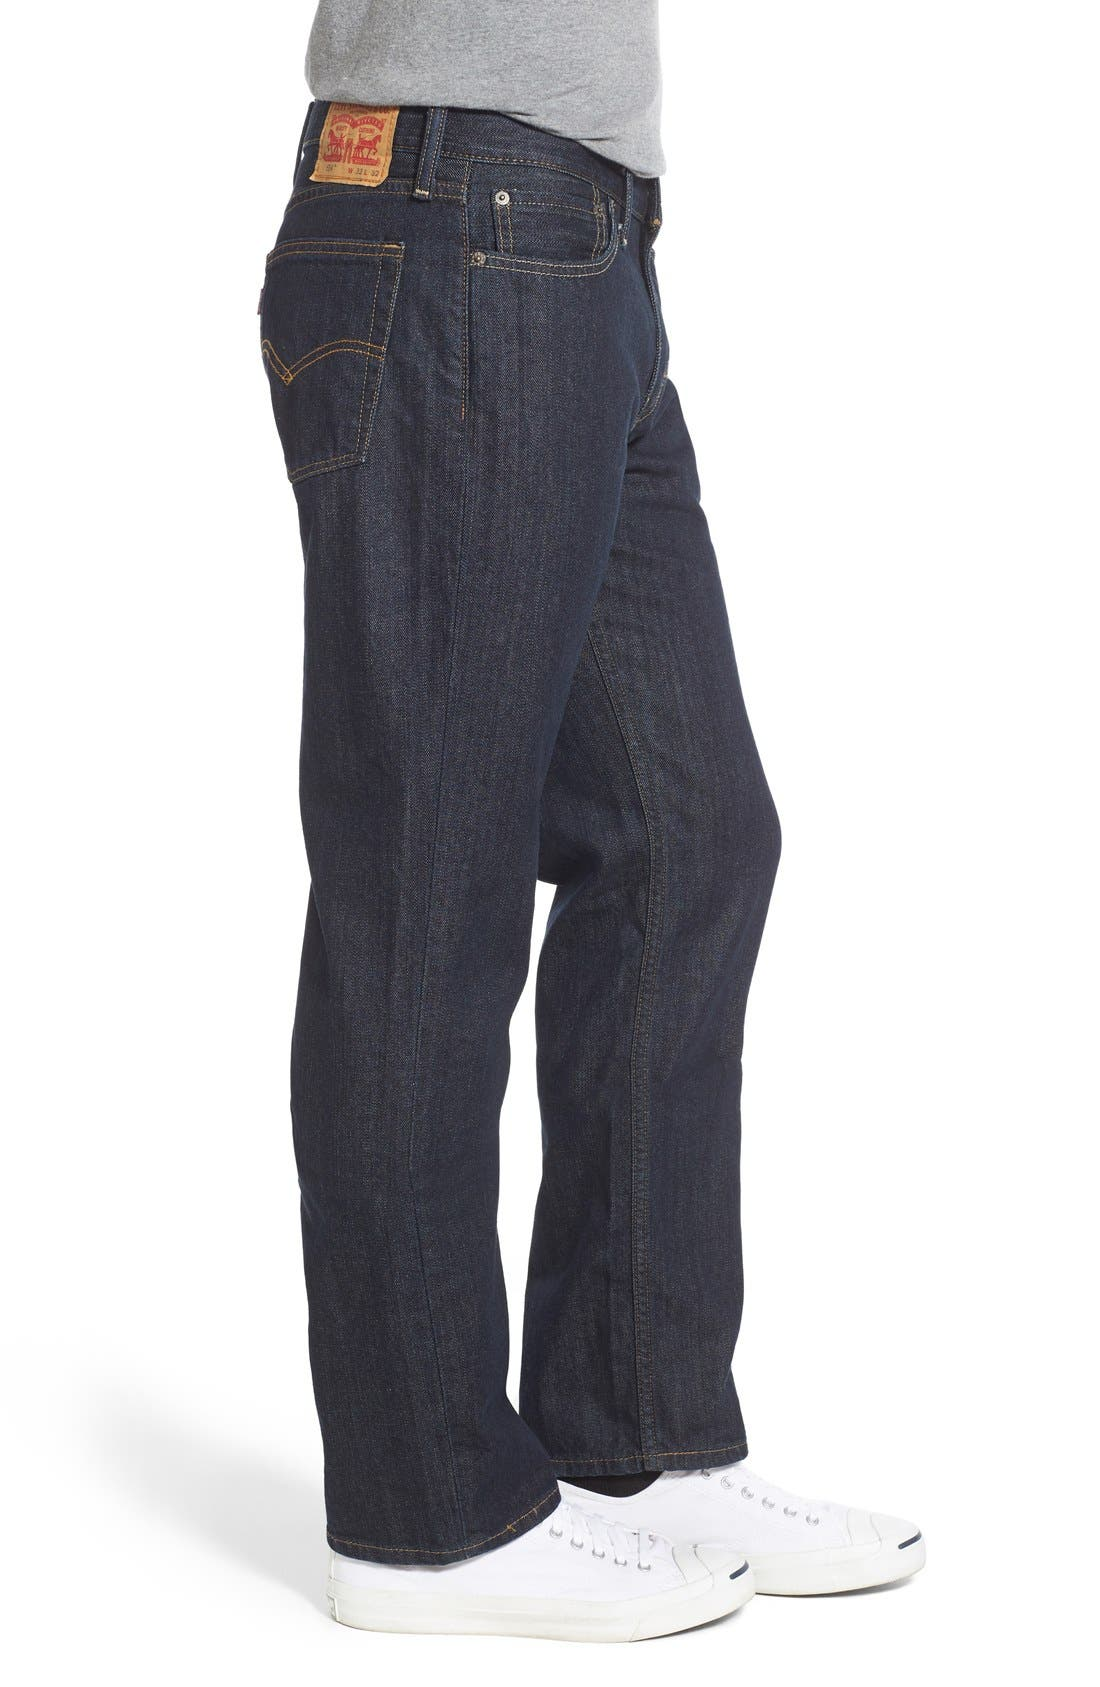 Alternate Image 3  - Levi's® 514™ Straight Leg Jeans (Tumbled Rigid) (Regular & Tall)